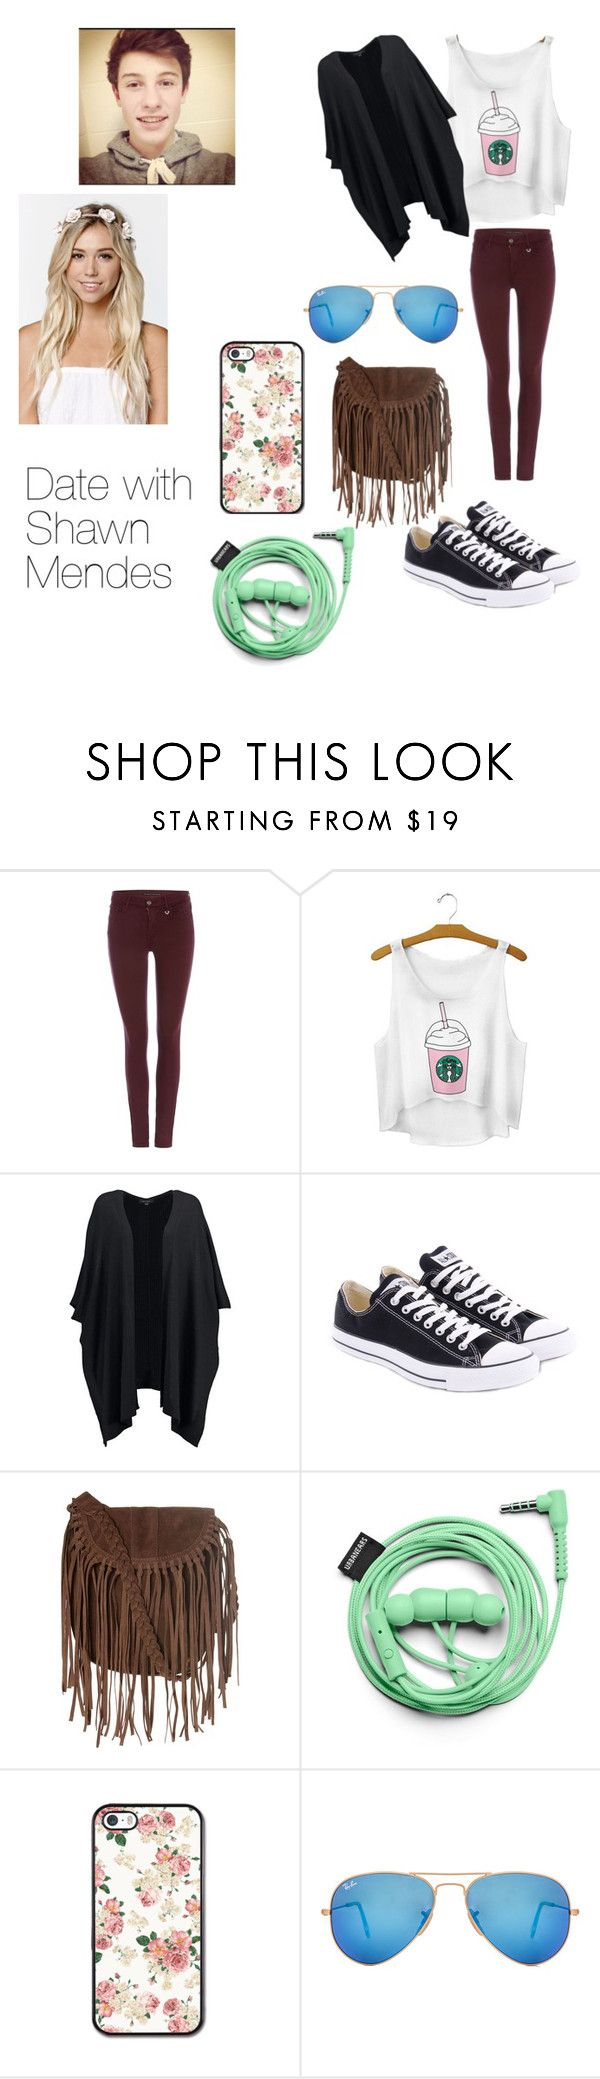 """Date with Shawn Mendes;)"" by books-obsessed ❤ liked on Polyvore featuring True Religion, New Look, Converse, Glamorous, Urbanears, Ray-Ban, With Love From CA, women's clothing, women and female"